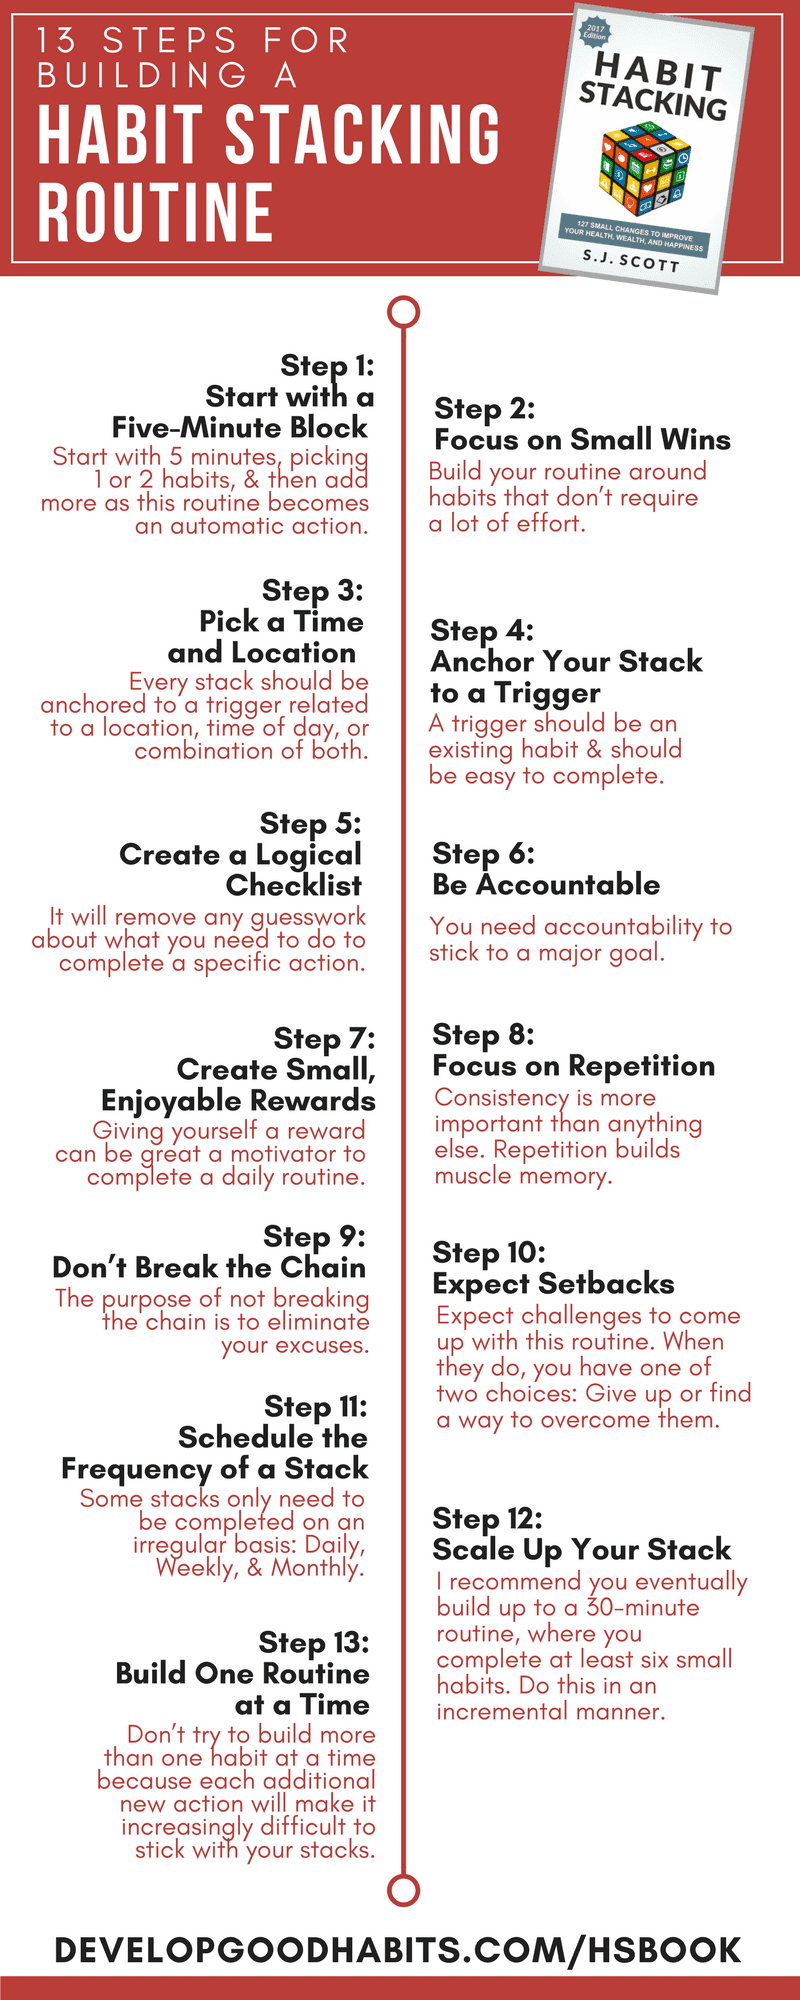 If you follow this habit stacking blueprint, you can identify those important small actions, put them into a logical framework, and then complete each one with a single trigger or cue.